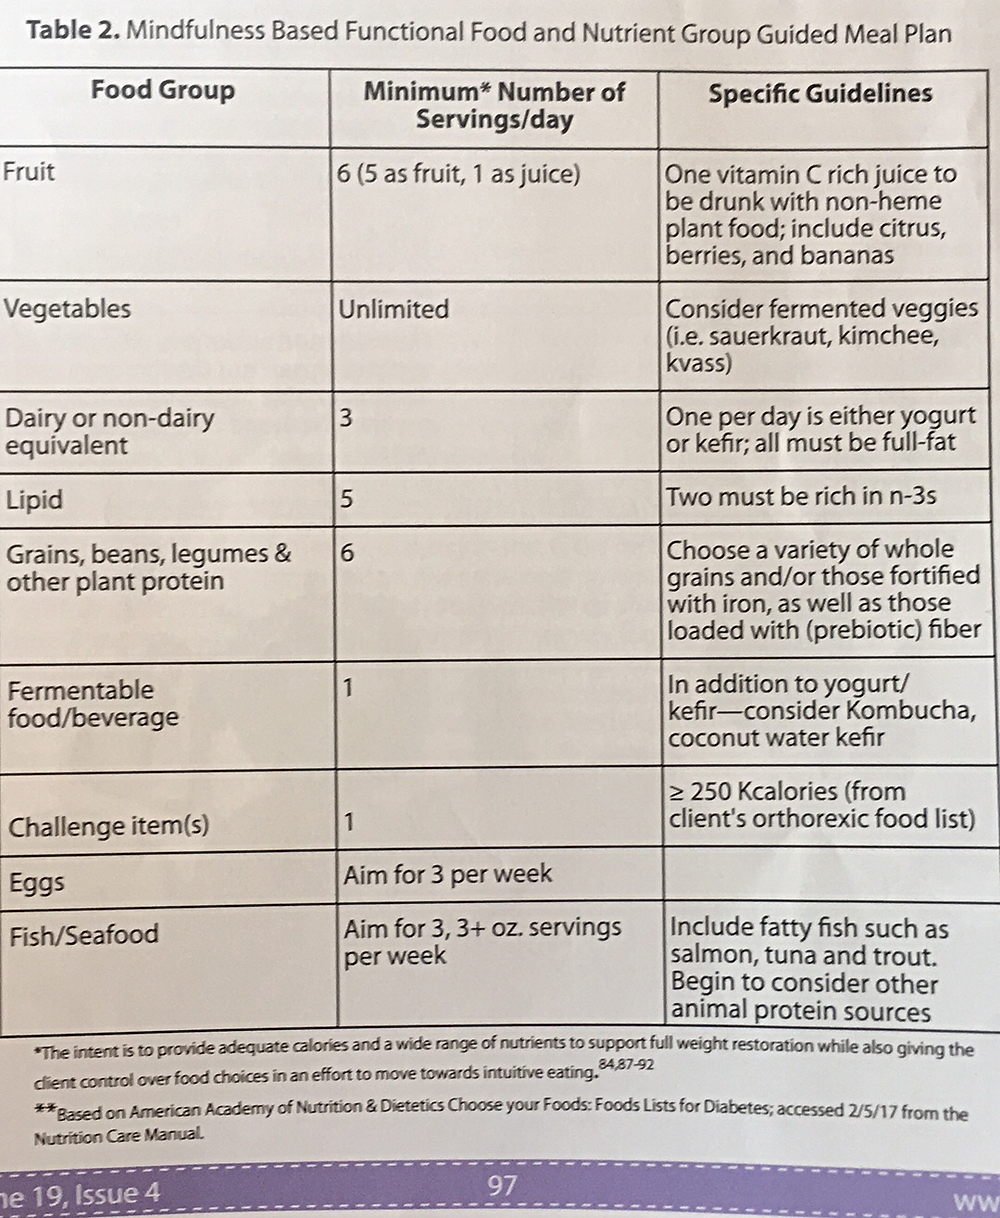 Functional Food and  Nutrient Group meal plan